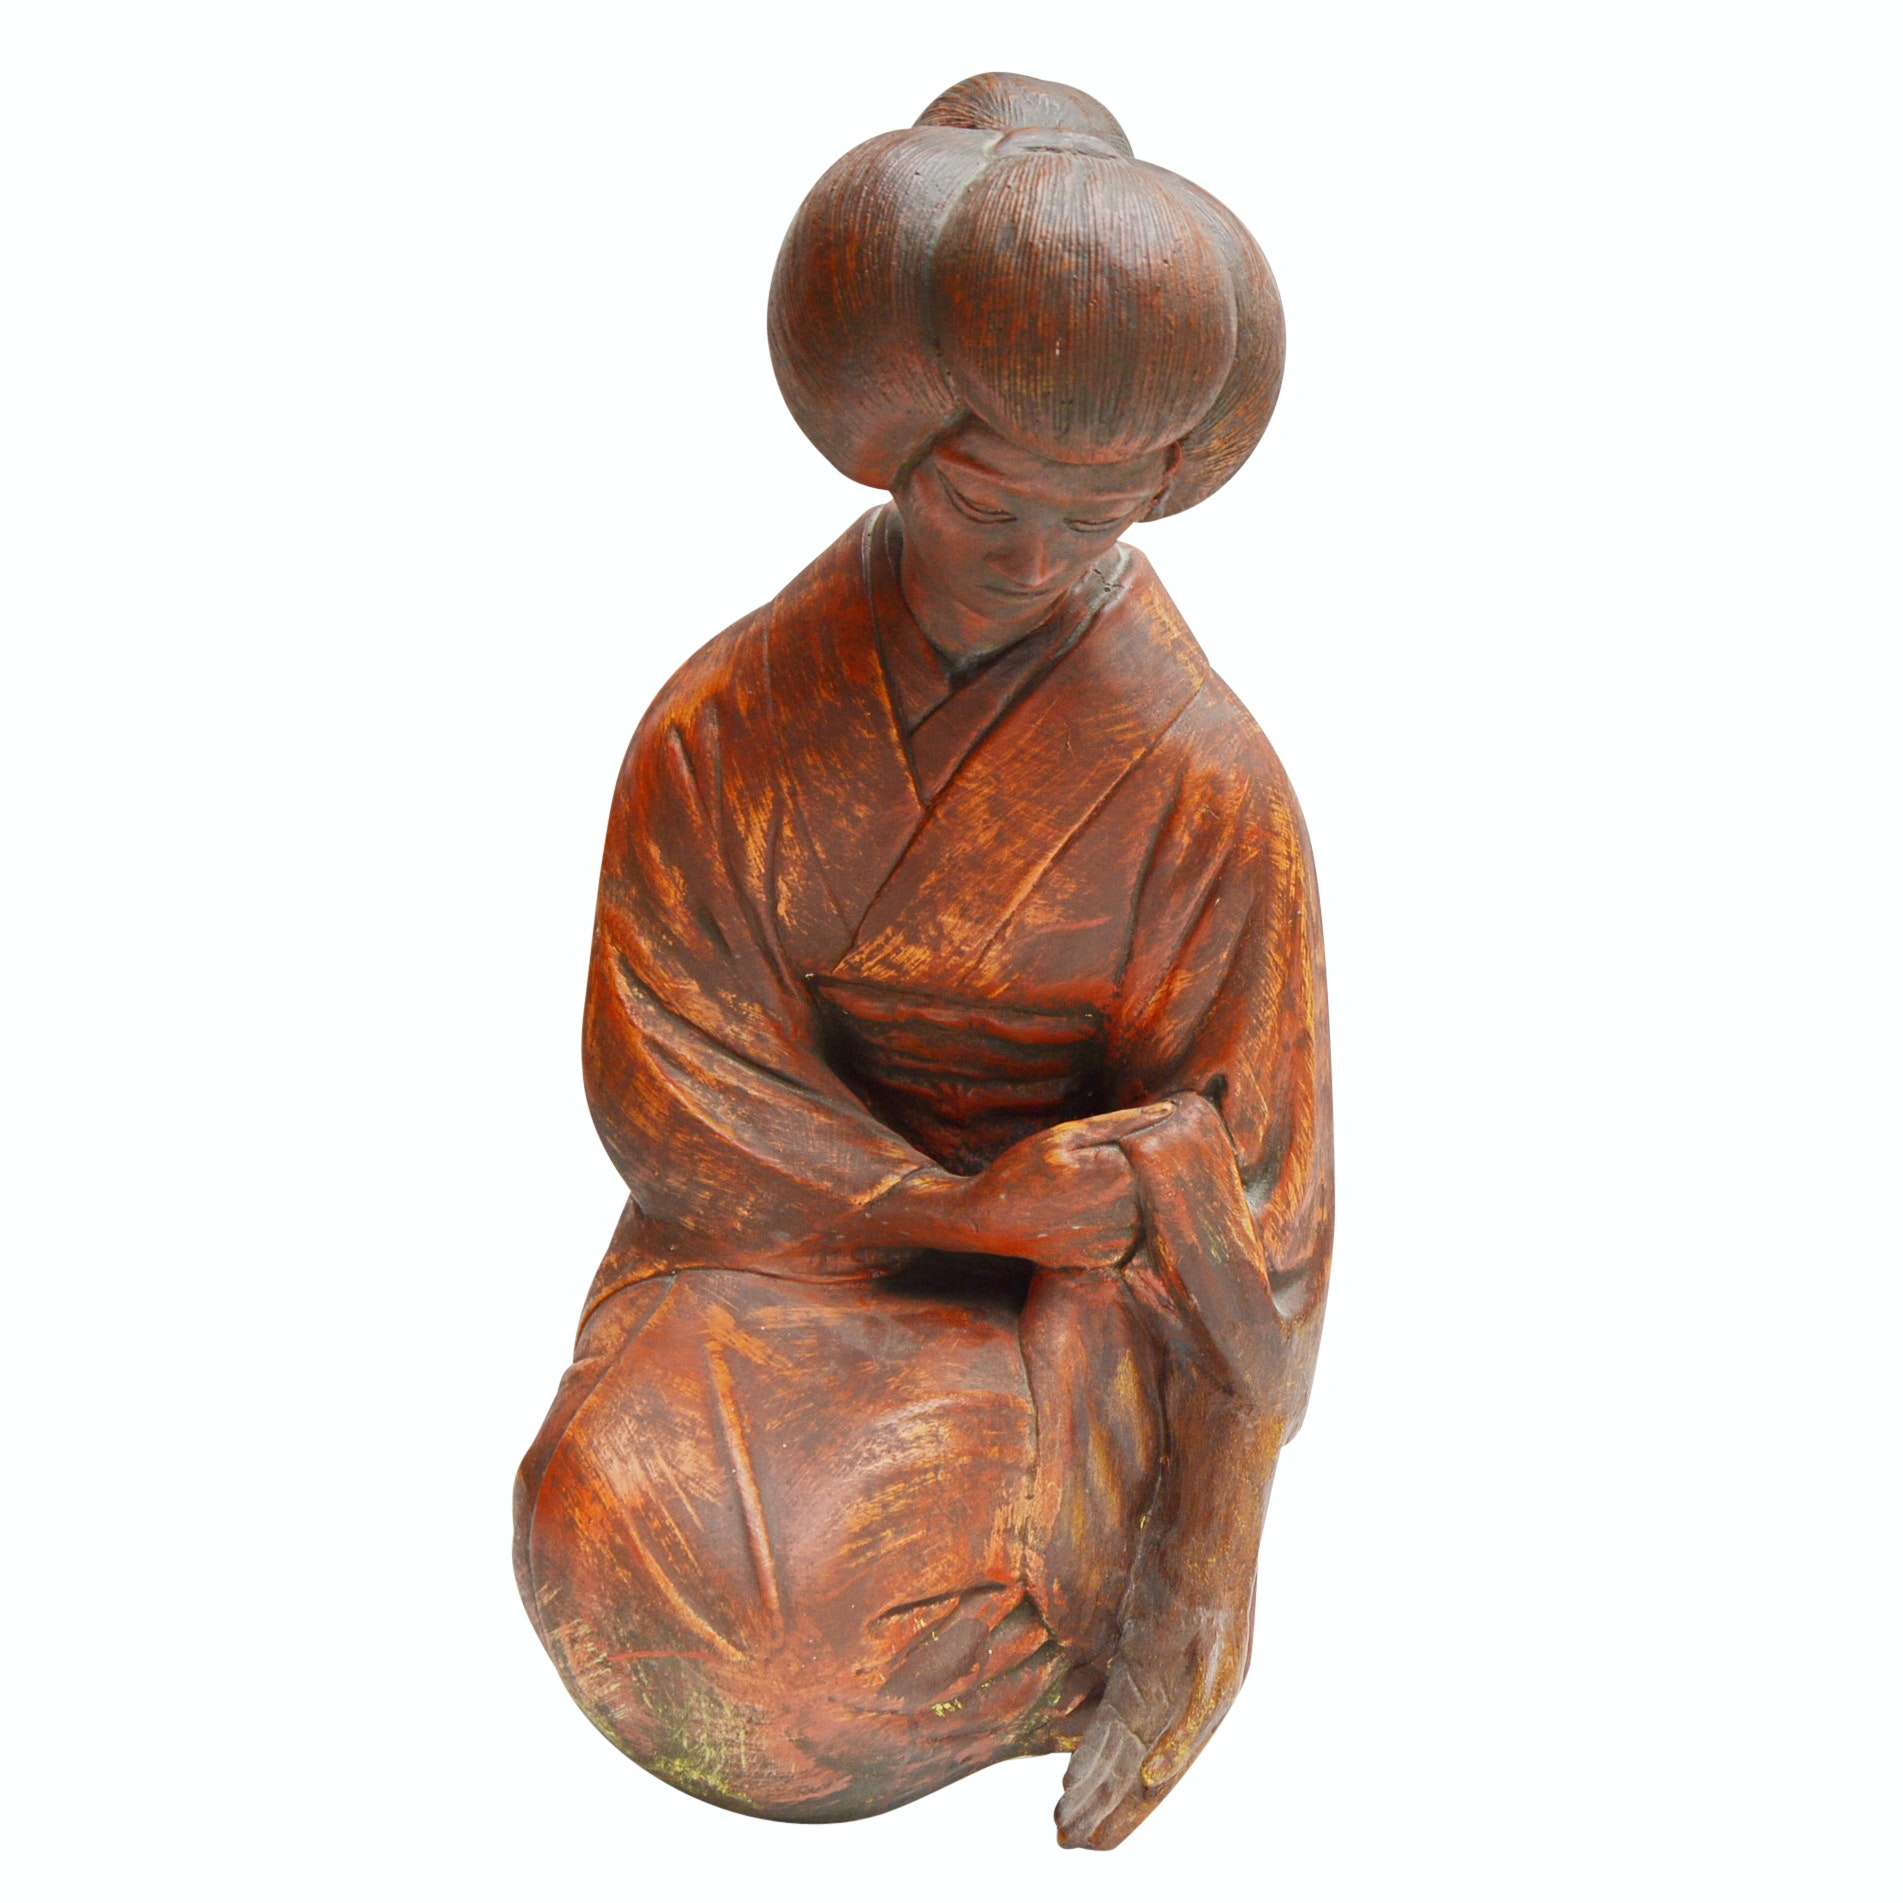 Plaster Statue of a Japanese Woman